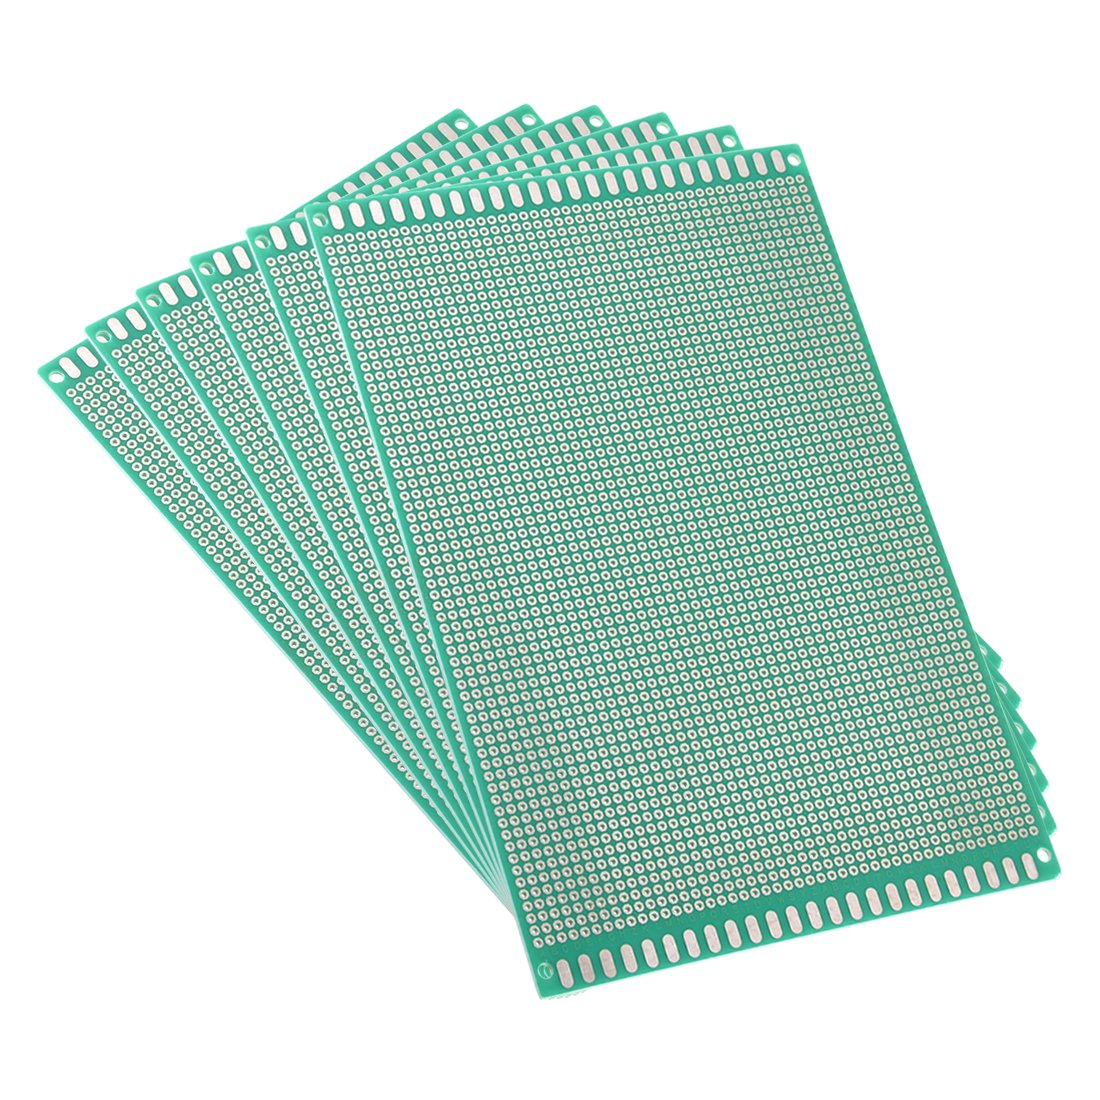 uxcell 12x18cm Single Sided Universal Printed Circuit Board for DIY Soldering Green Thickness 1.6mm 6pcs